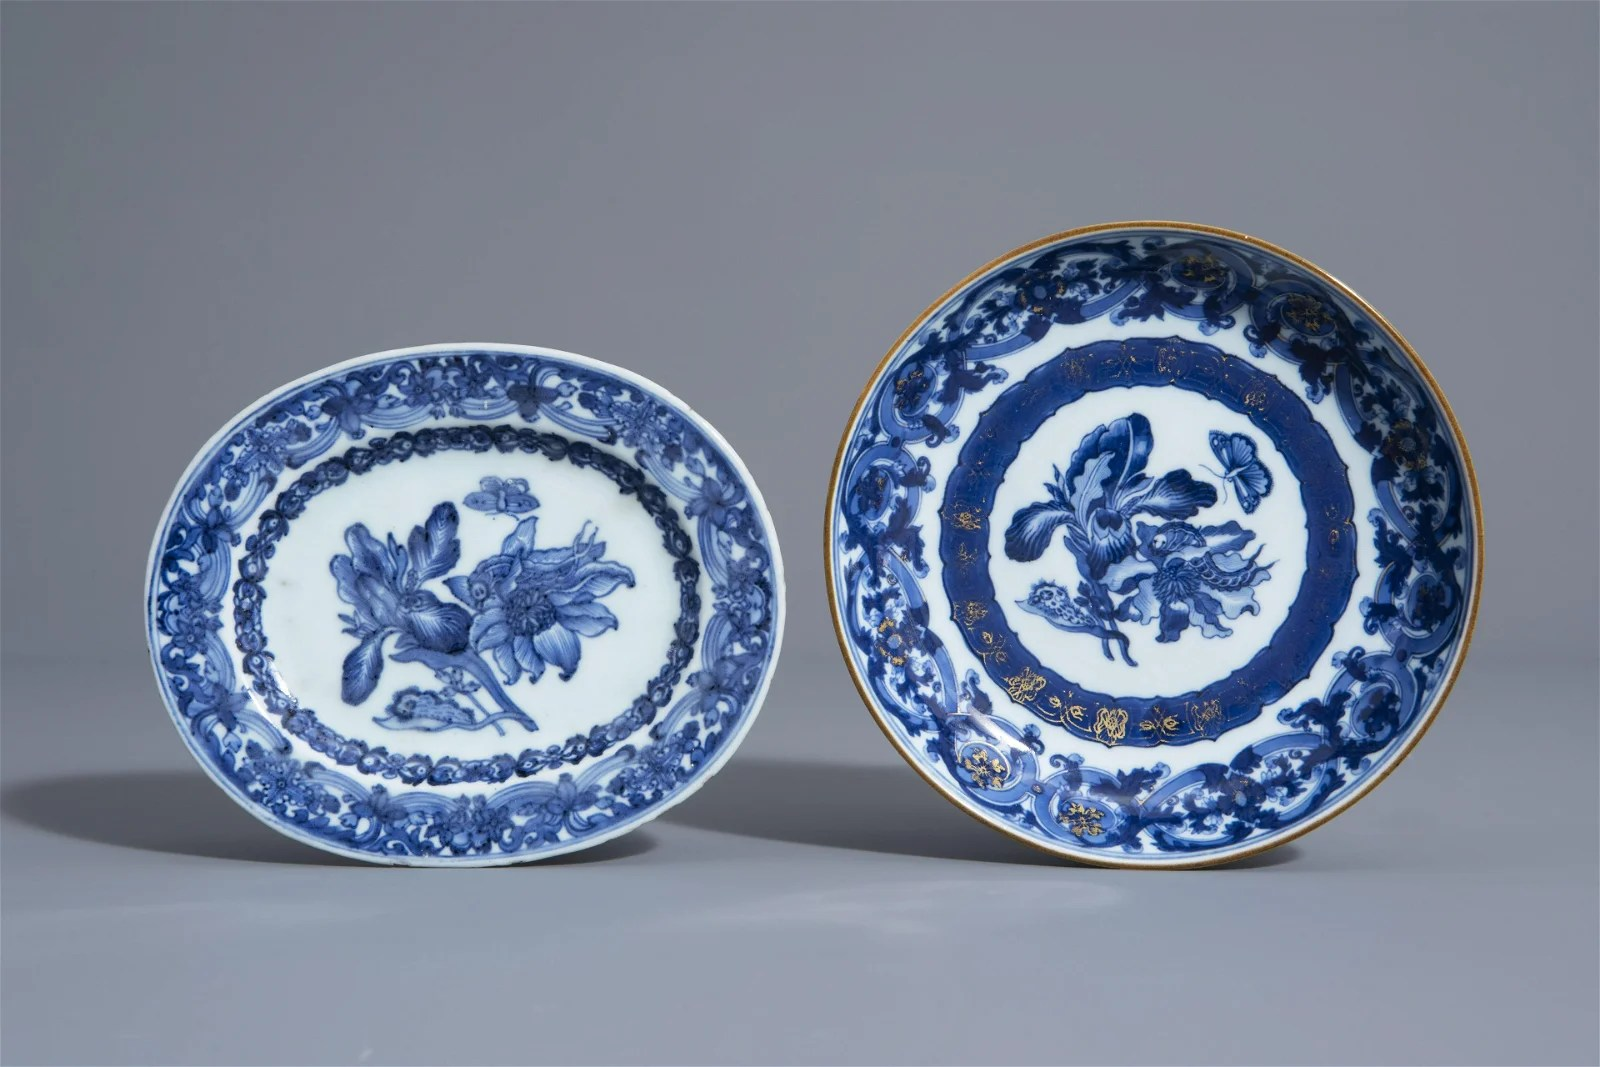 Two Chinese blue and white dishes with floral design